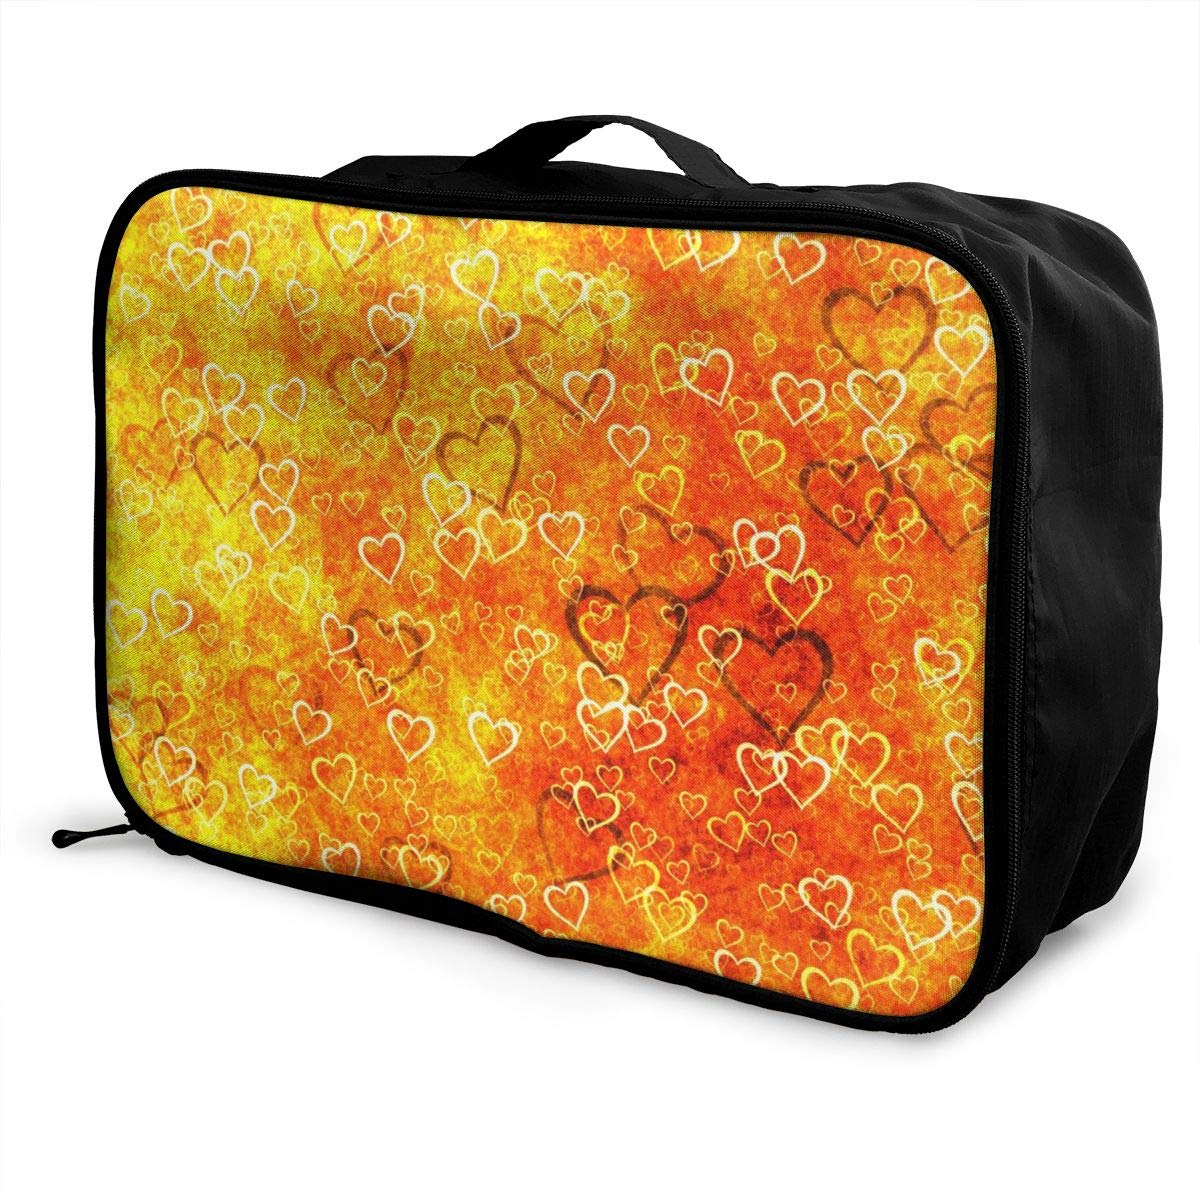 Orange Texture Heart Travel Lightweight Waterproof Foldable Storage Carry Luggage Large Capacity Portable Luggage Bag Duffel Bag